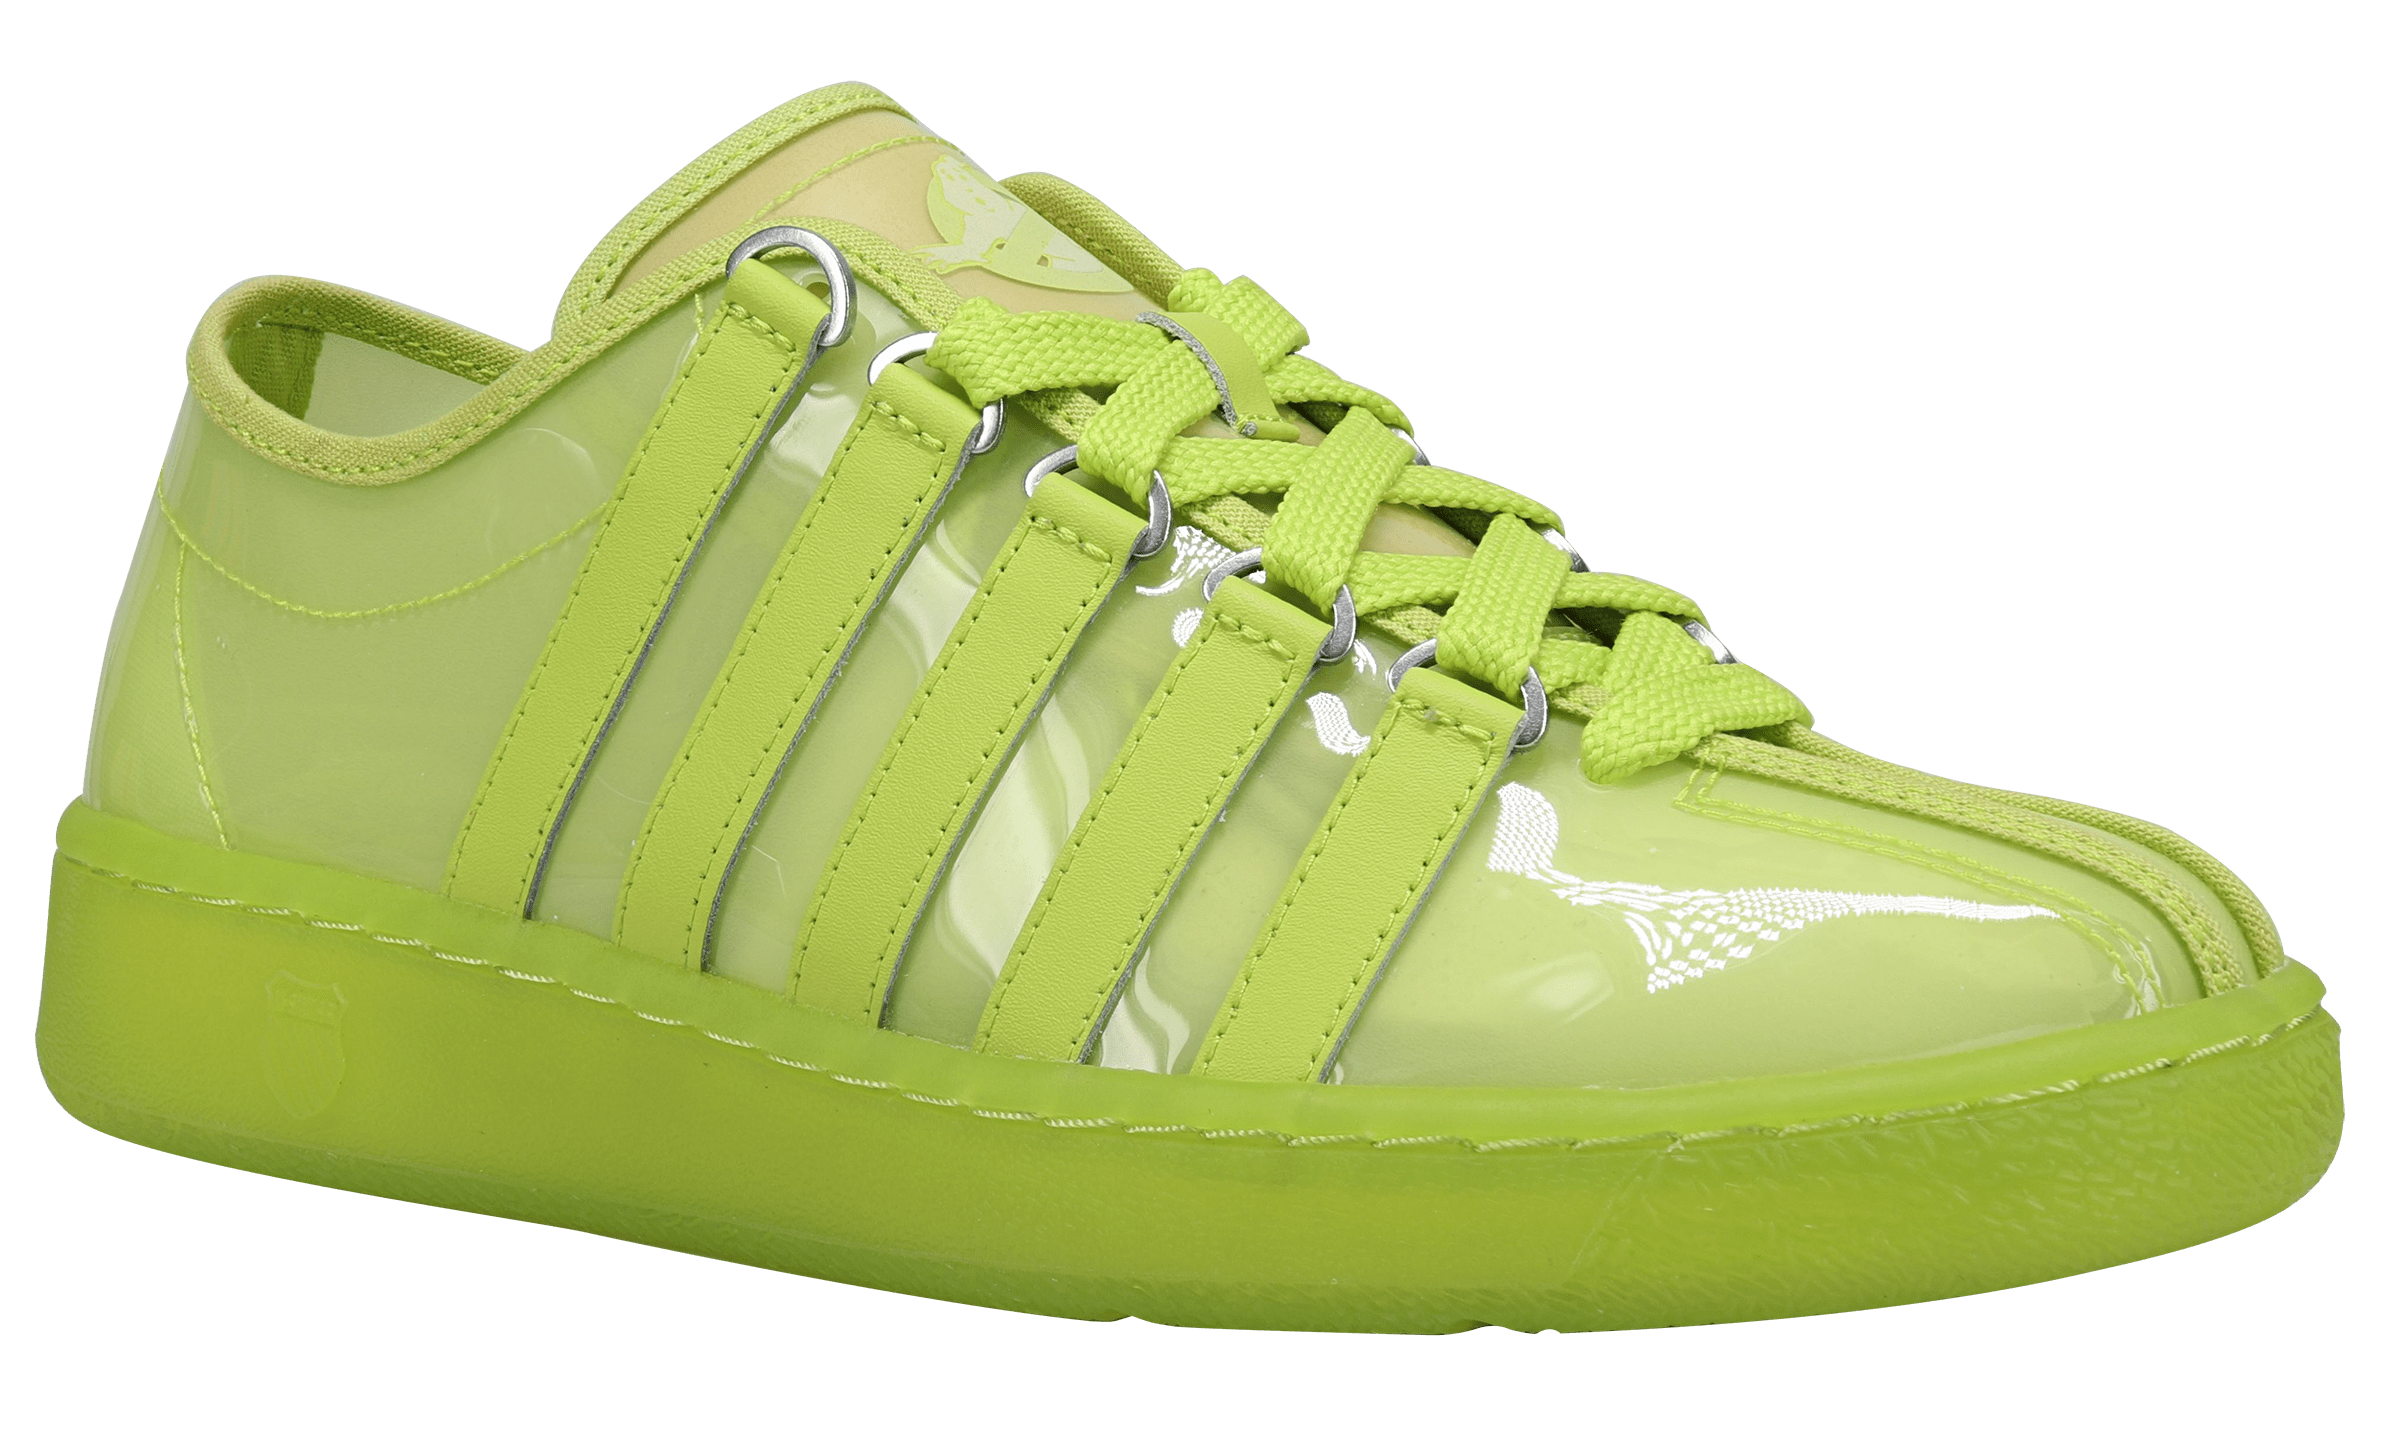 K-Swiss x Ghostbusters Classic 2000 'Slimer' 06619-305 (Angle)